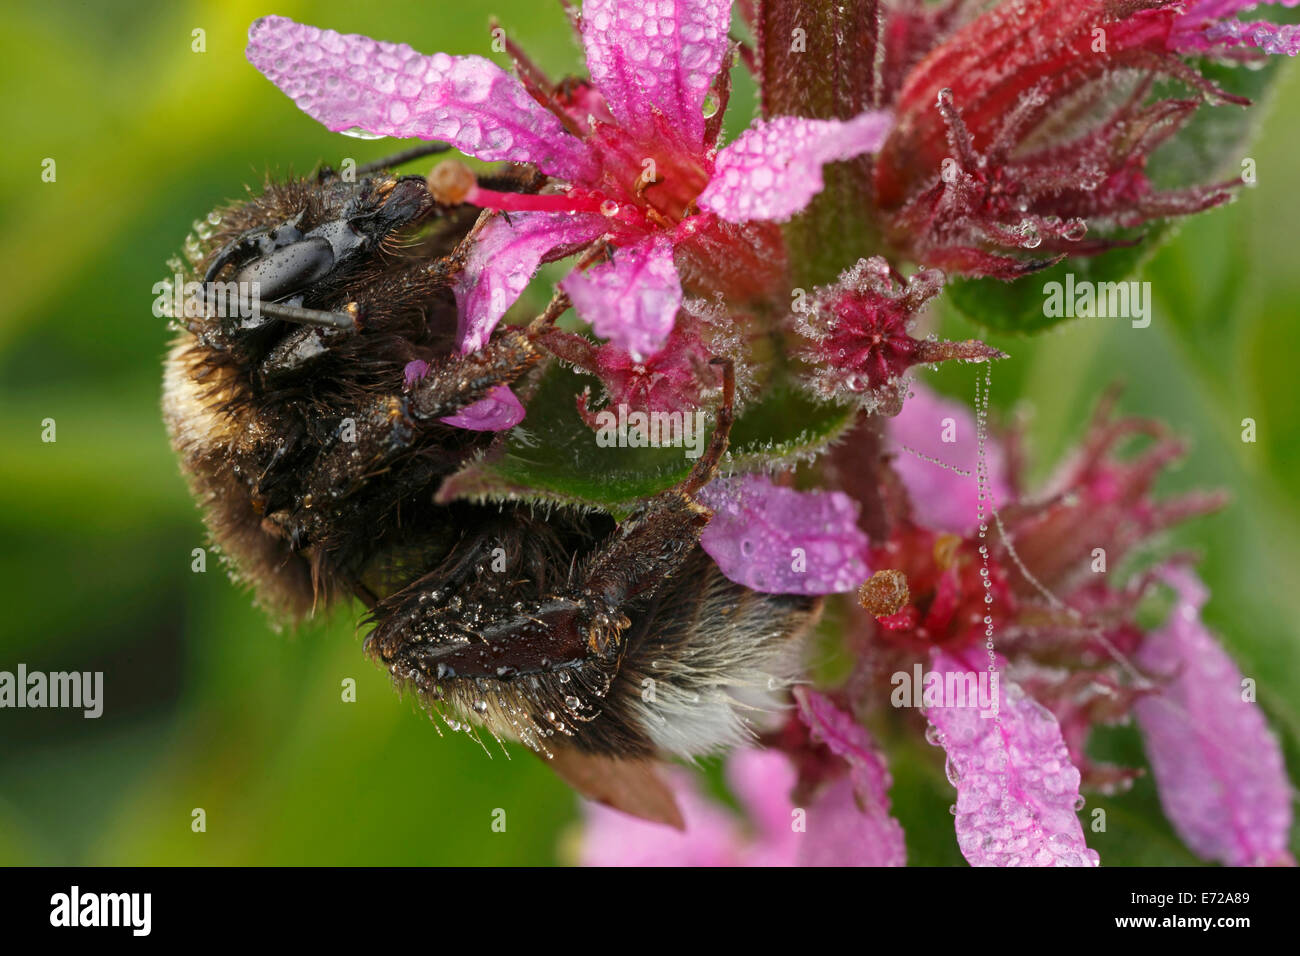 Buff-tailed Bumblebee or Large Earth Bumblebee (Bombus terrestris), Hesse, Germany Stock Photo